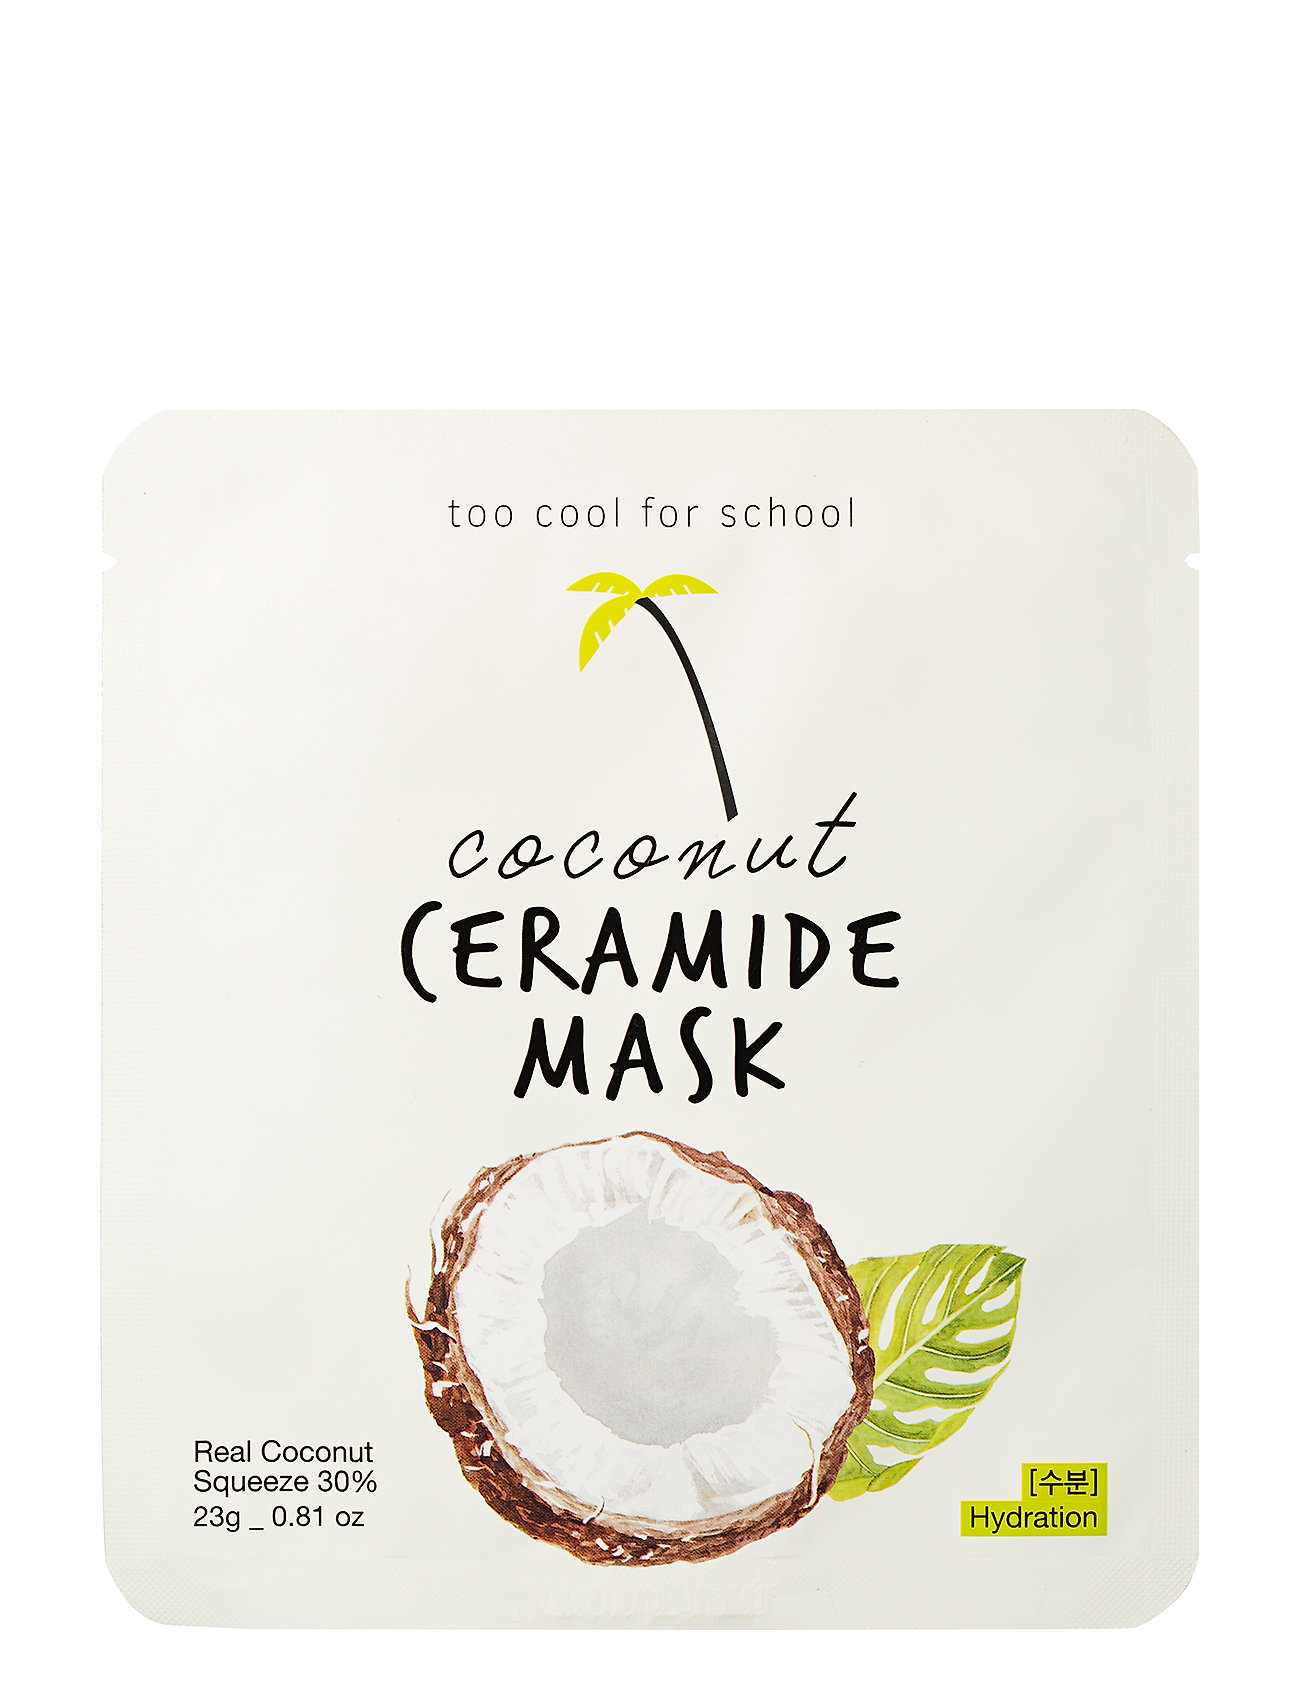 Too Cool For School Too Cool For School Coconut Ceramide Mask - CLEAR